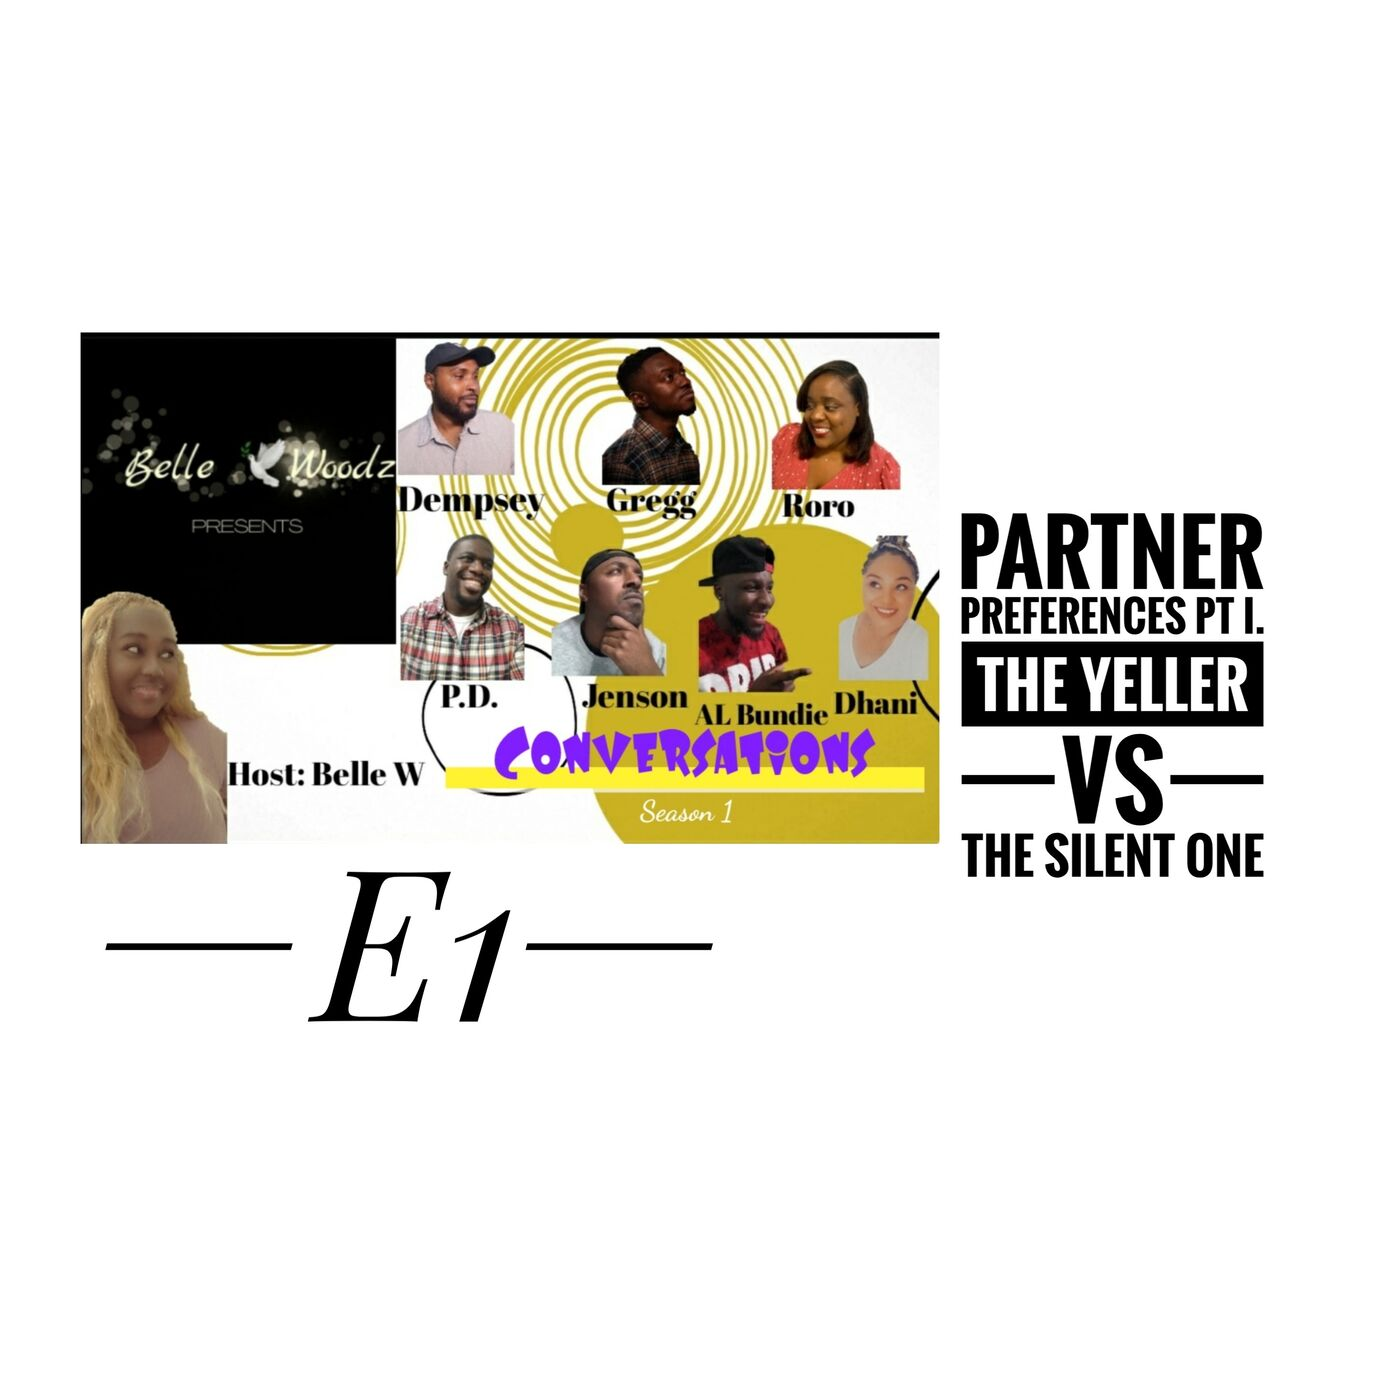 Partner Preferences Pt 1. The Yeller Or The Silent One